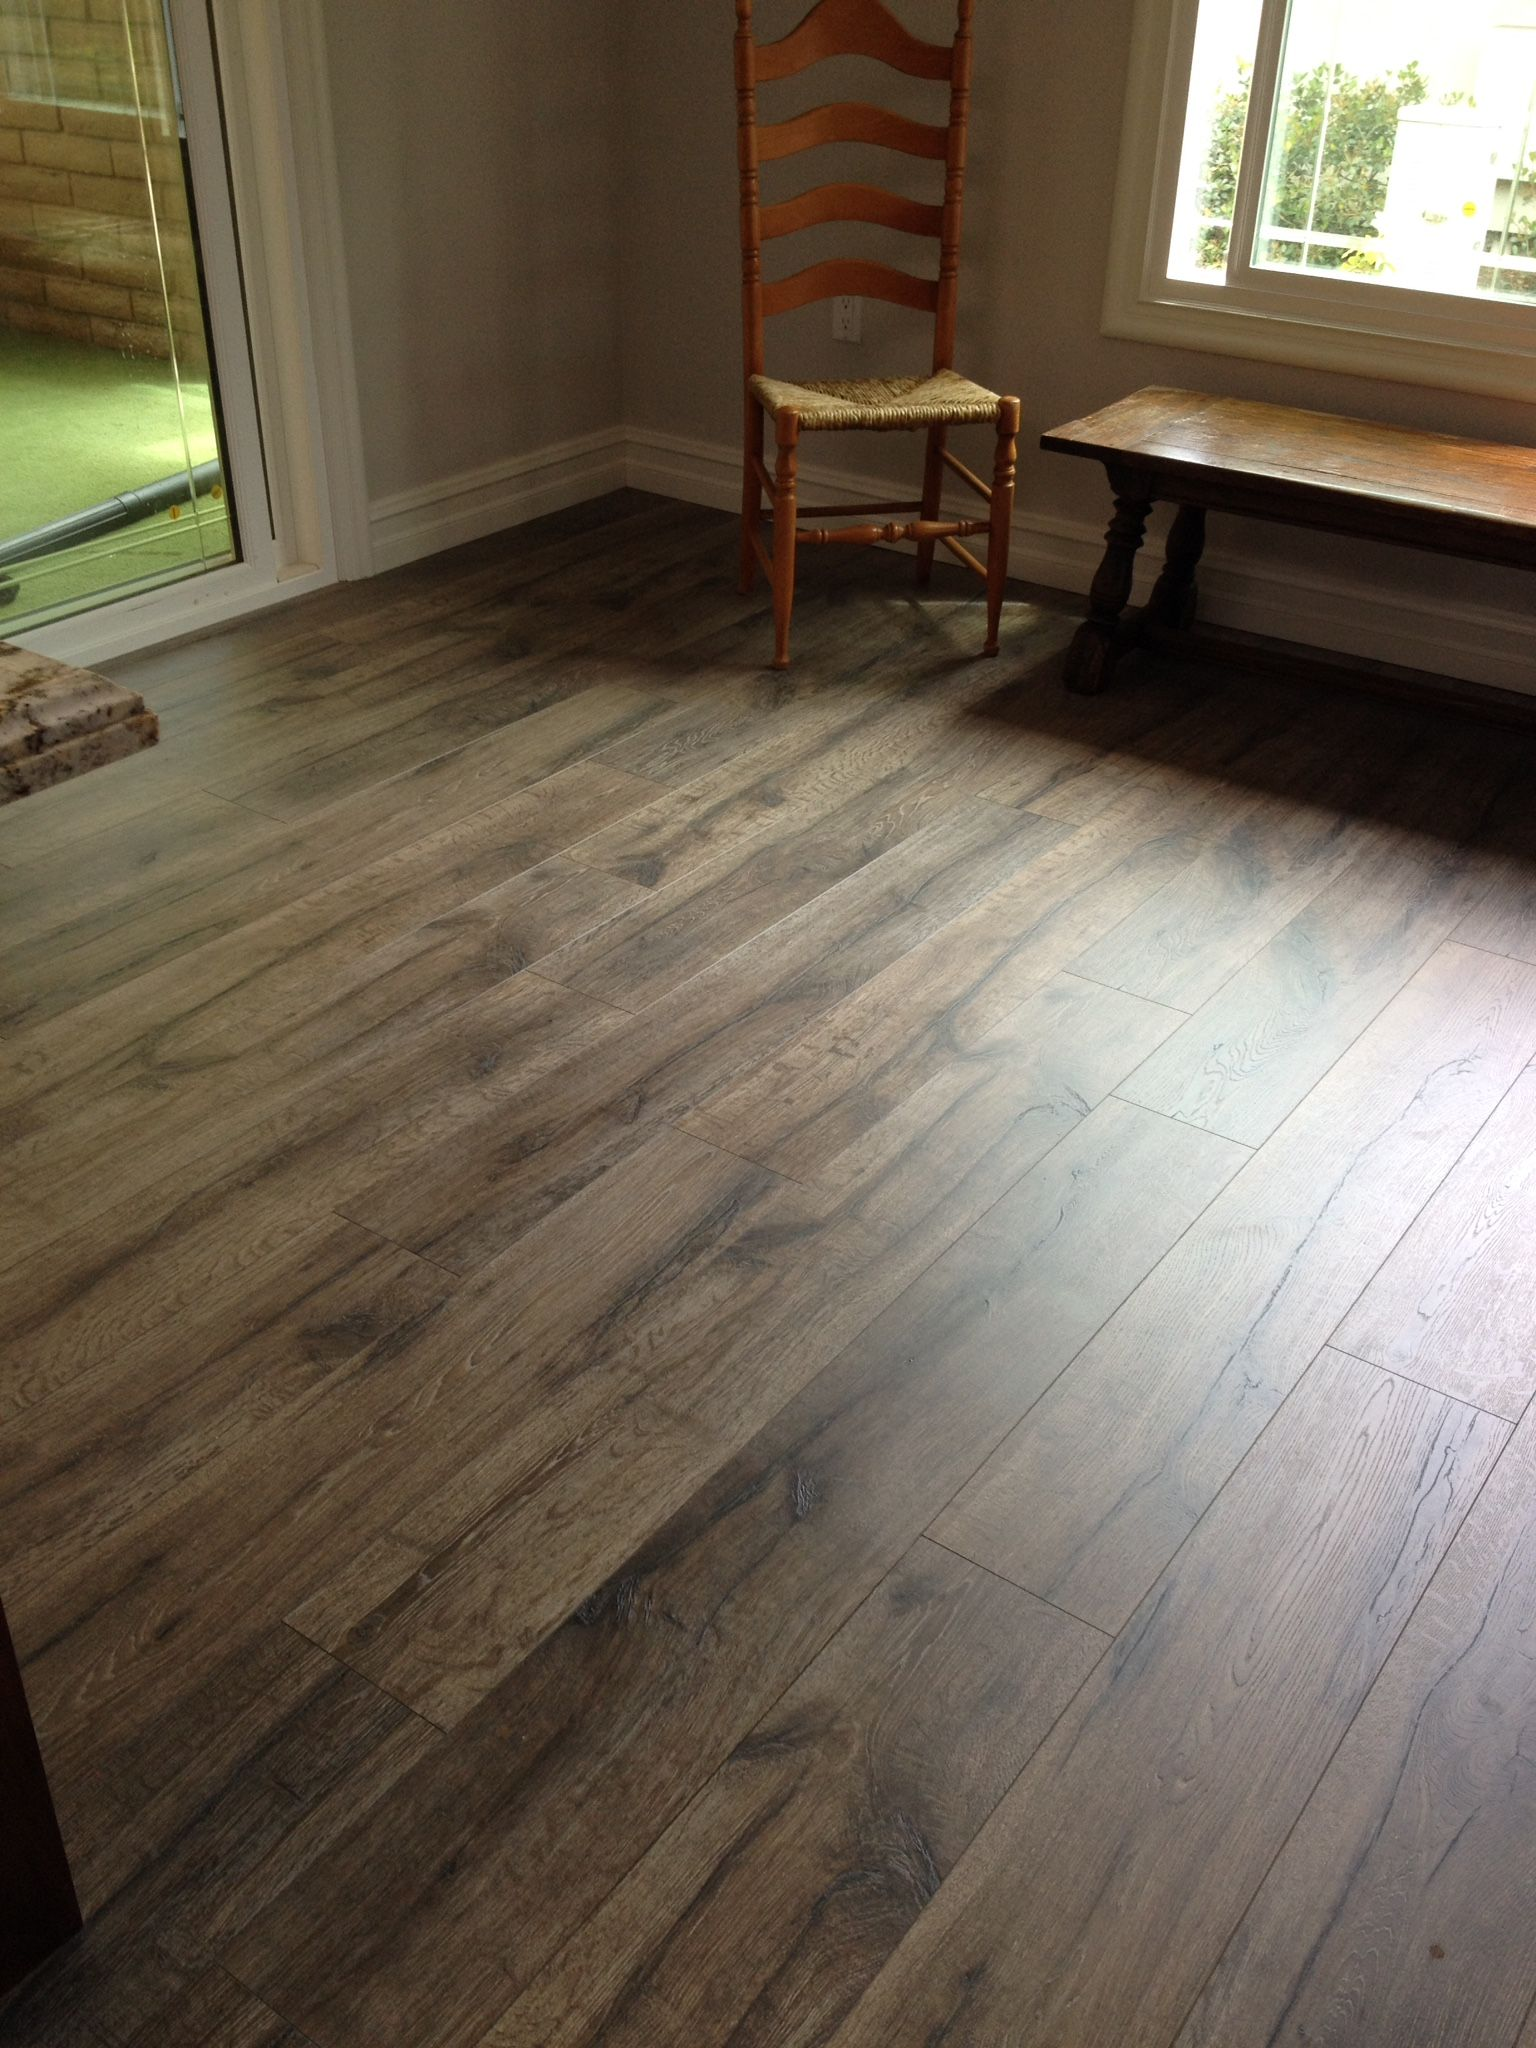 Loving The Country Cottage Look In Caren B S Room Quick Step Heathered Oak Is Beautiful E Quickstep Reclaime Laminate